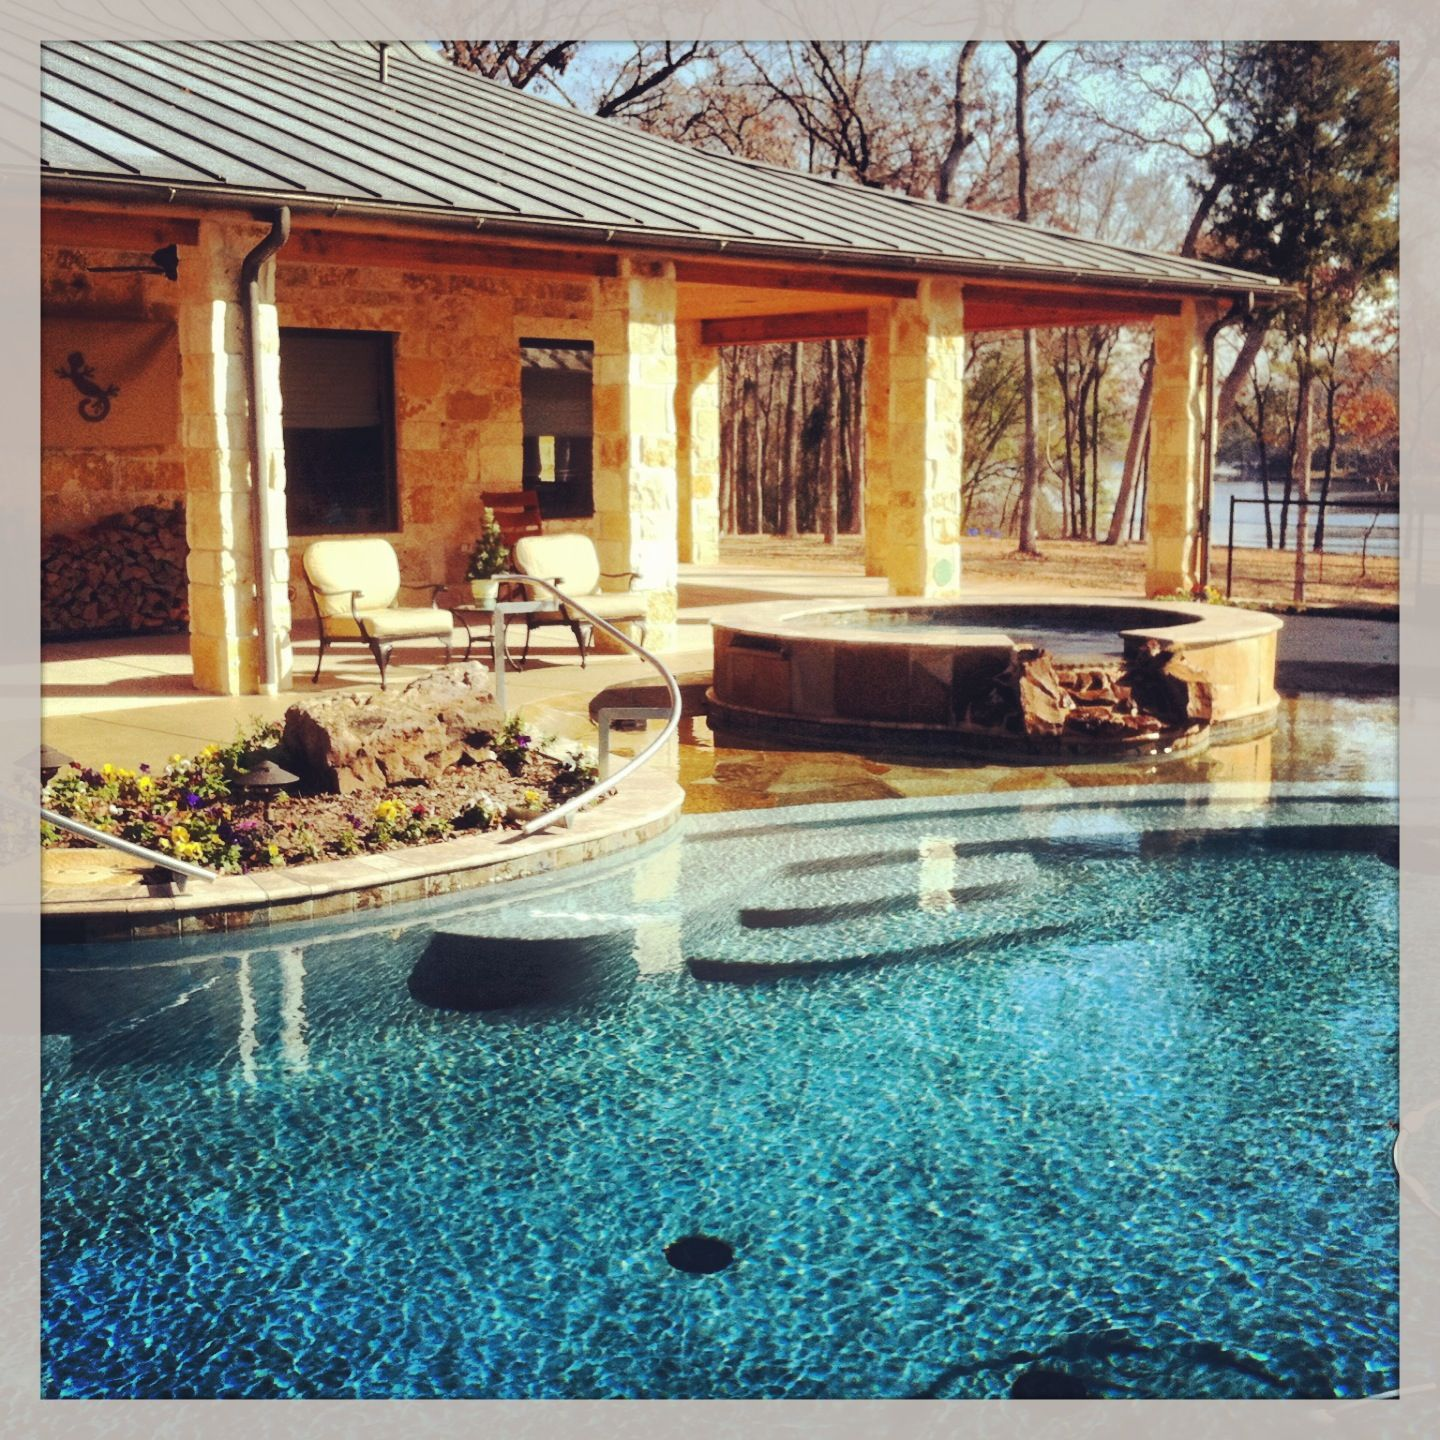 #gunite #swimming #pool and #gazebo with #grill area, #sundeck and #spa #hottub with #flagstone #coping #construction #builder #preferredpools #summer #backyard #outdoor